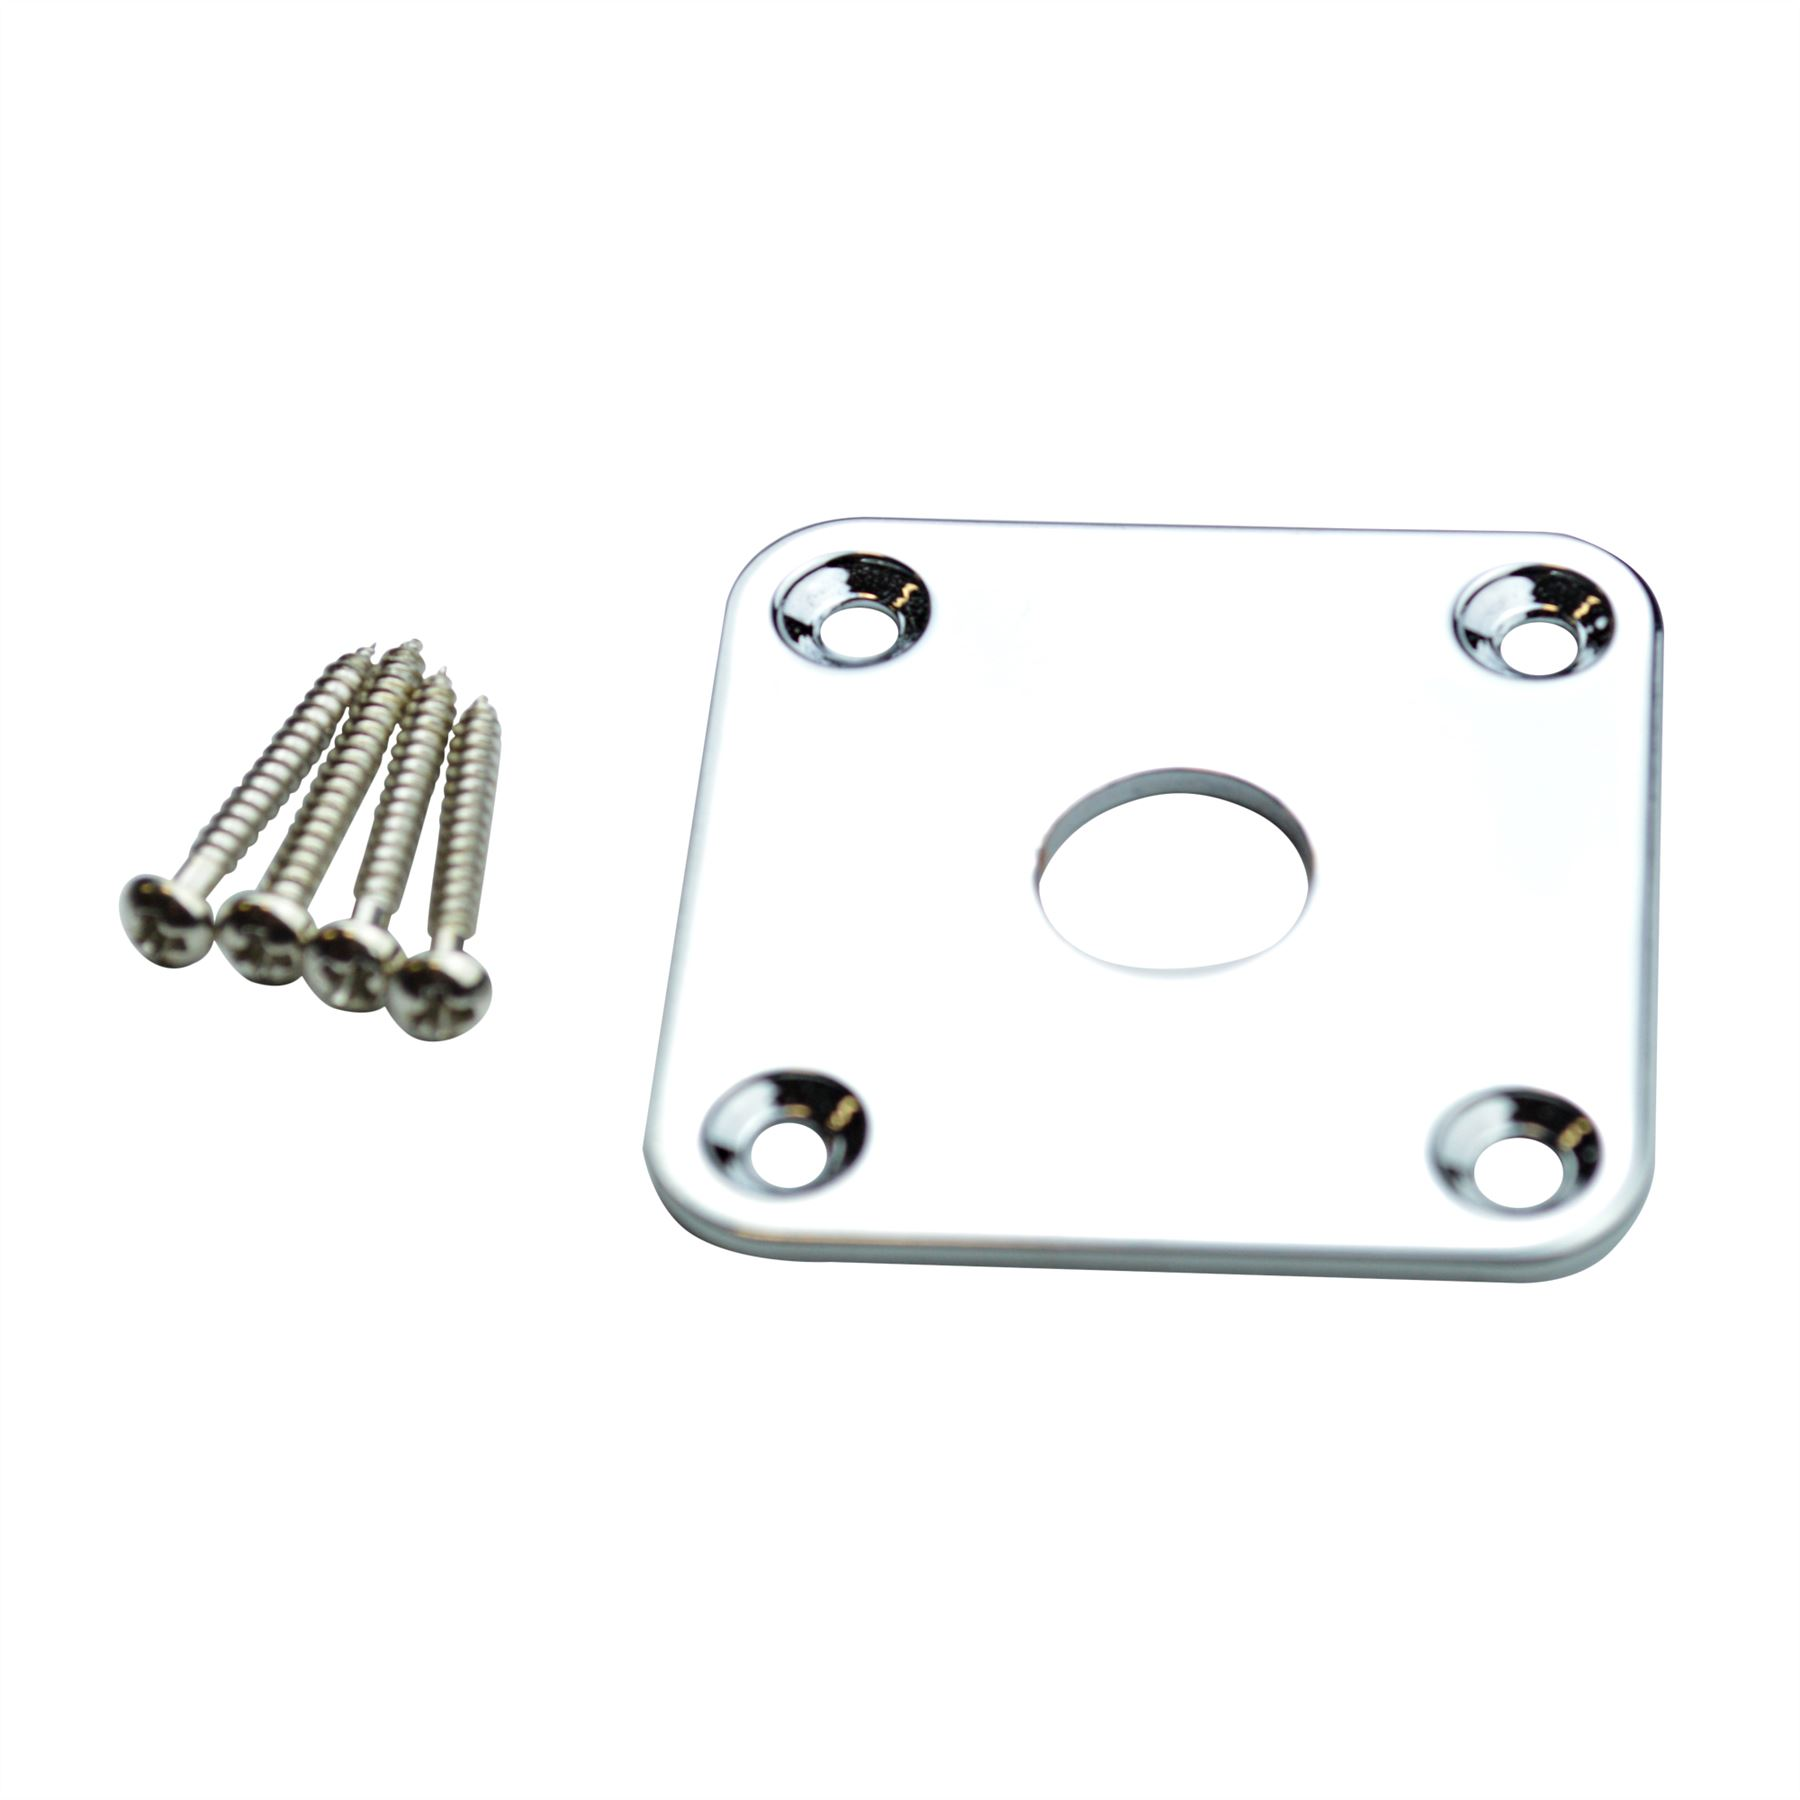 Metal Square Jack Plate For Epiphone Les Paul Electric